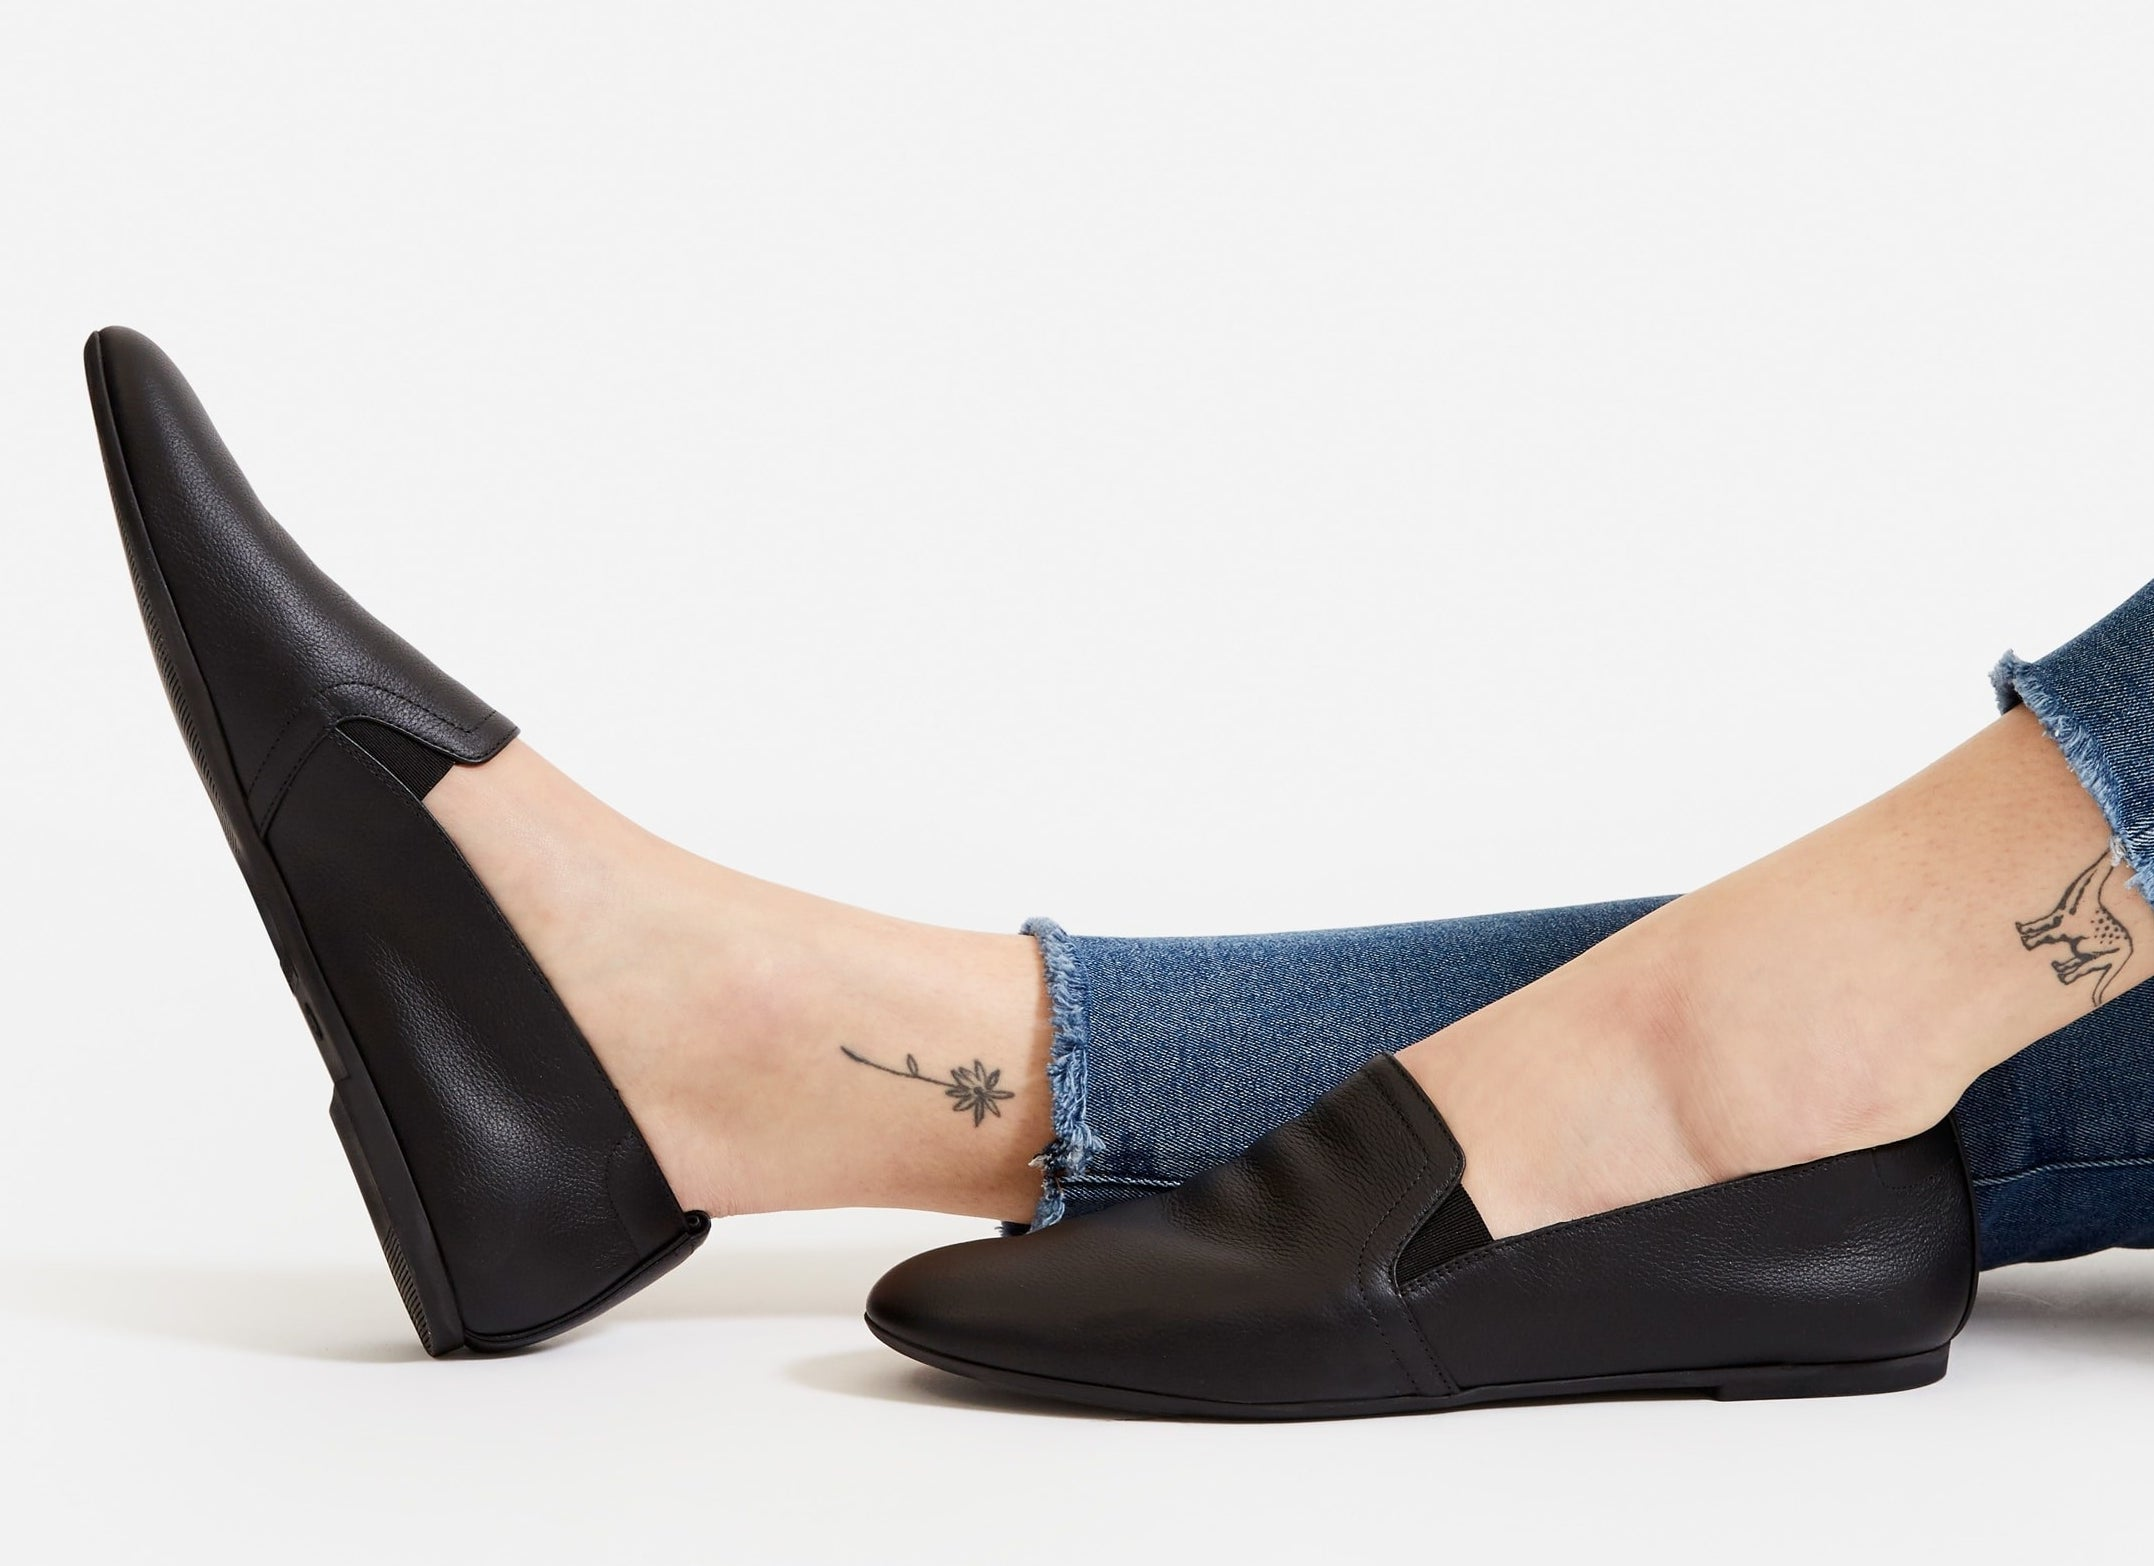 model in black flats with some top coverage and small elastic pieces on the edges of the foot